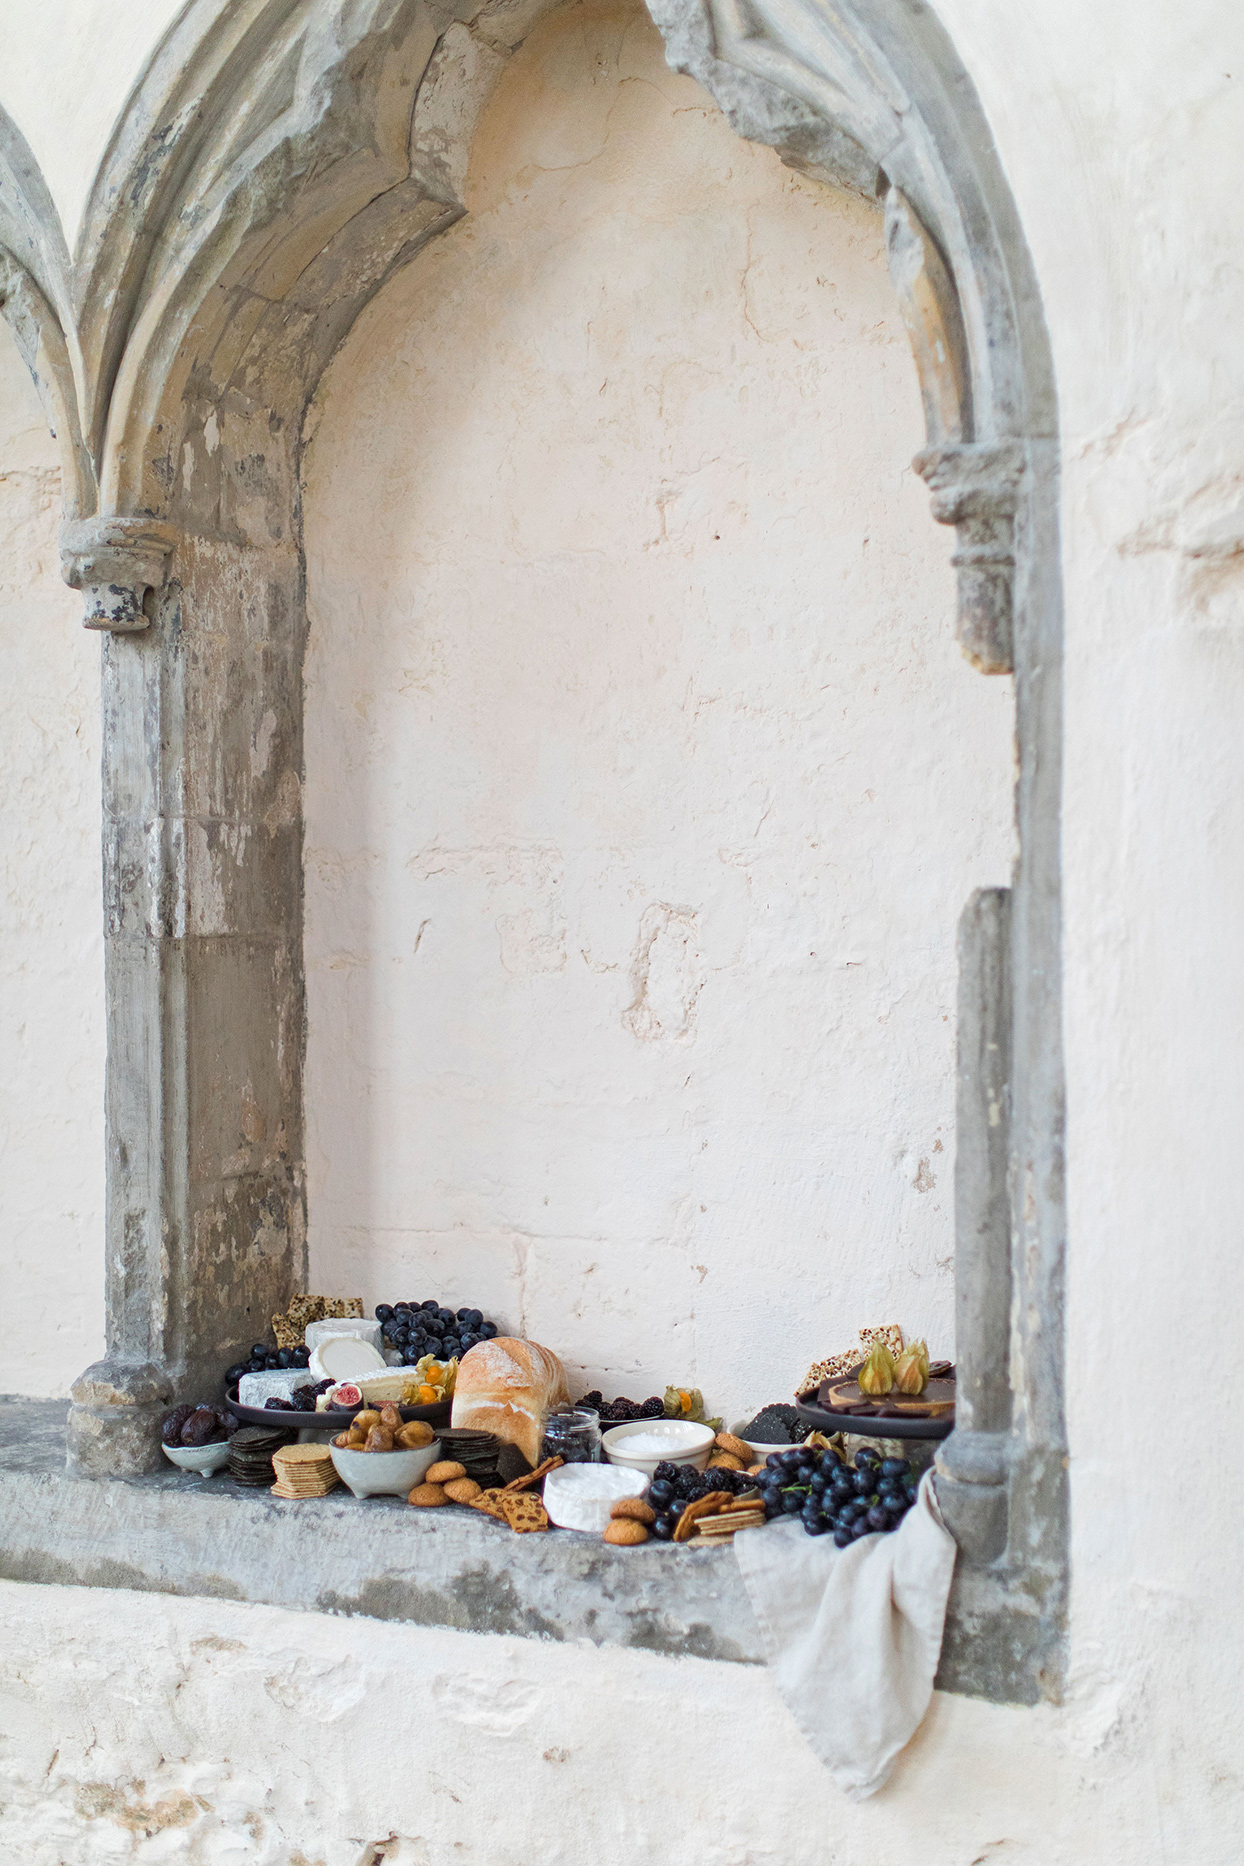 wedding grazing table perched in stone window frame